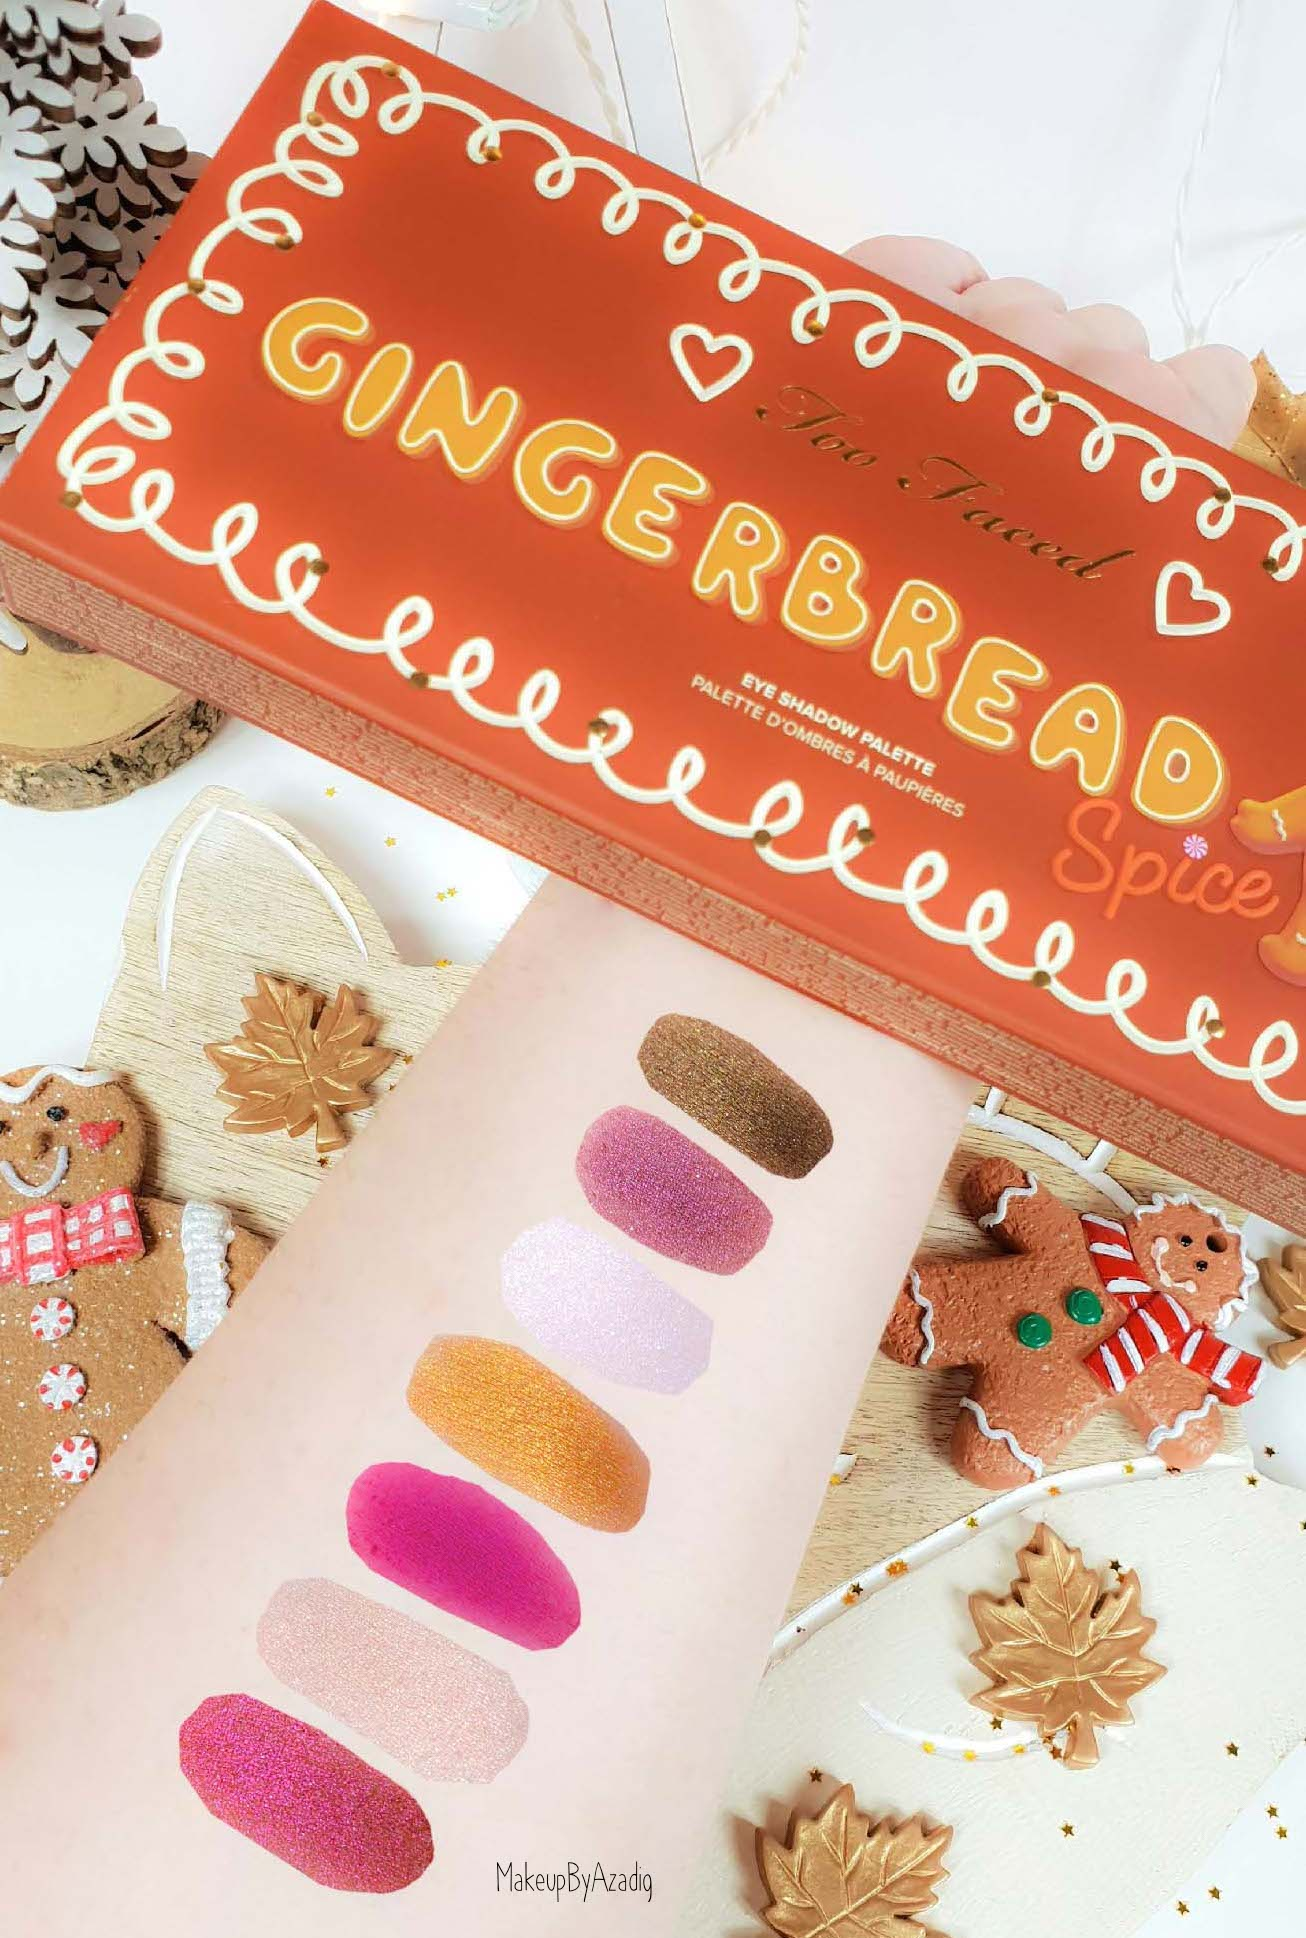 revue-palette-too-faced-gingerbread-spice-noel-france-makeupbyazadig-avis-prix-swatch-cute-swatches-art